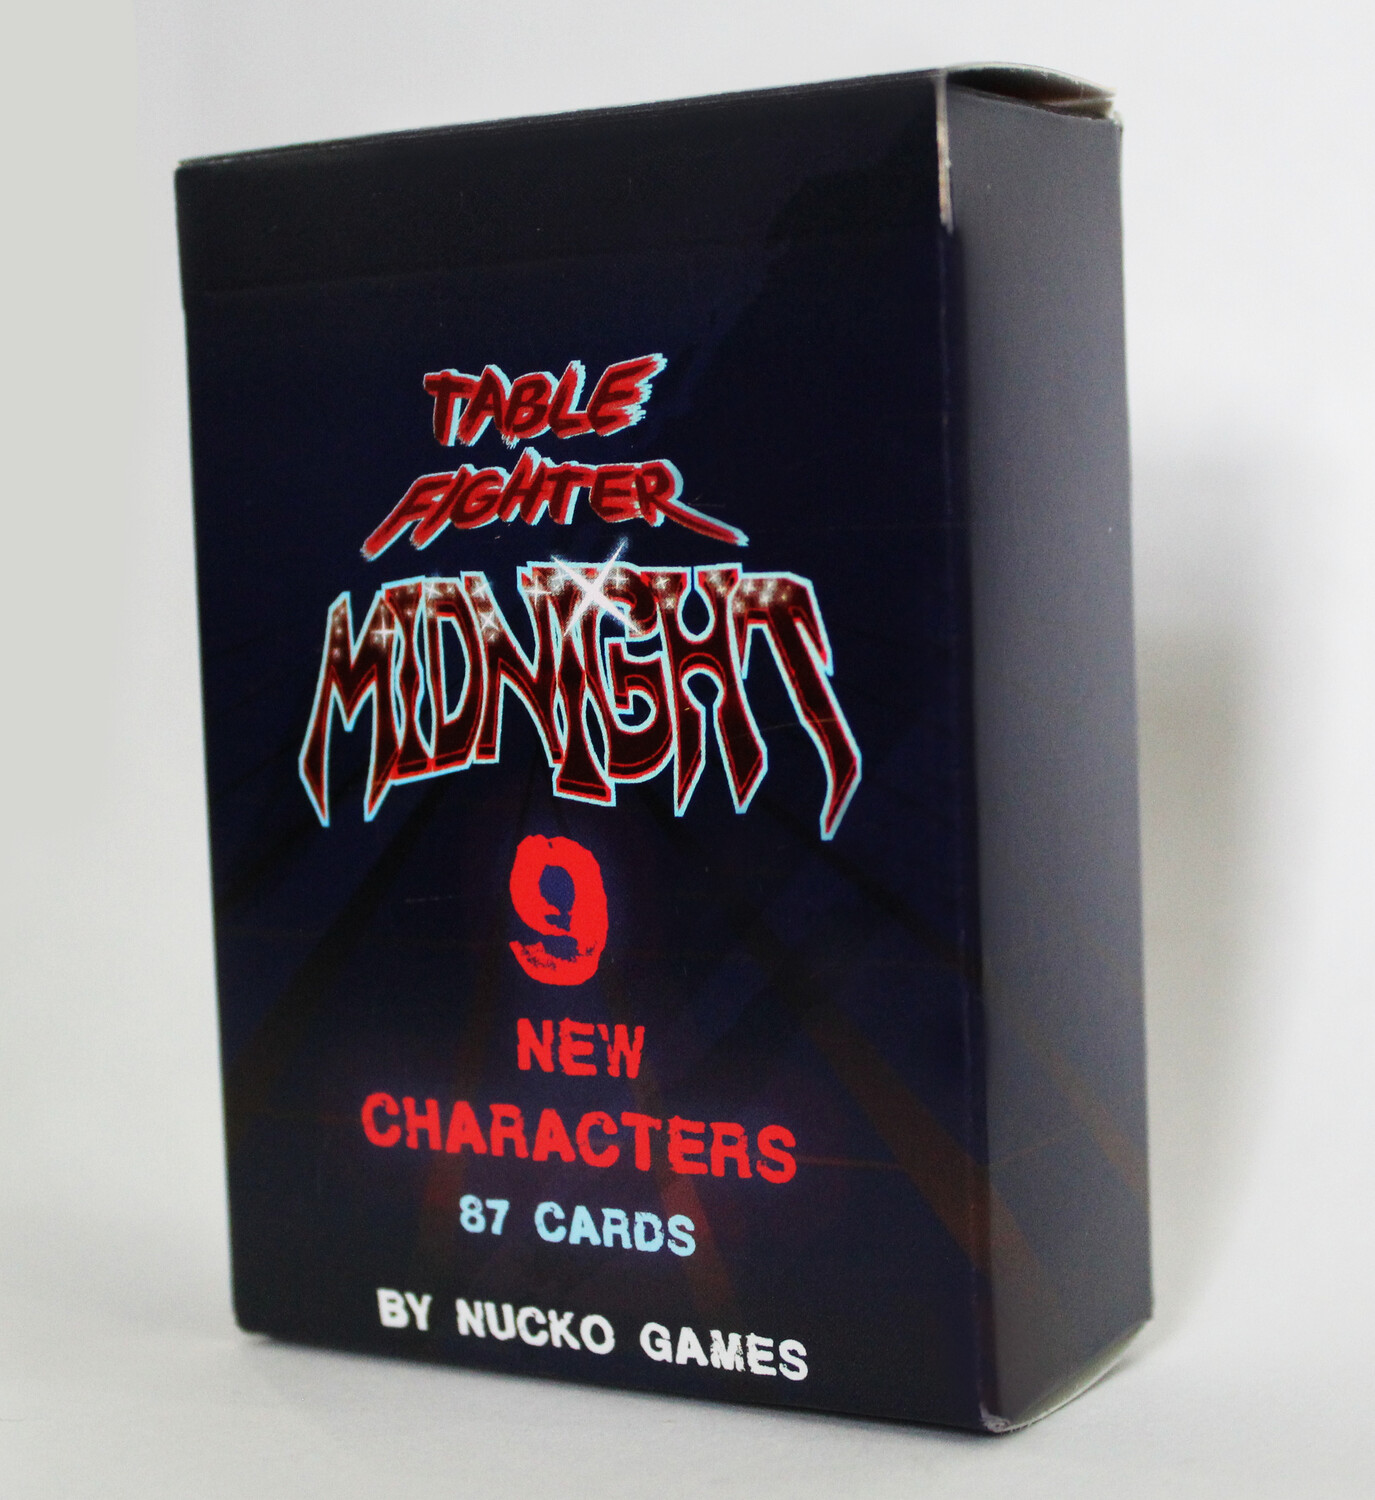 Expansion Set 2: Table Fighter MIDNIGHT